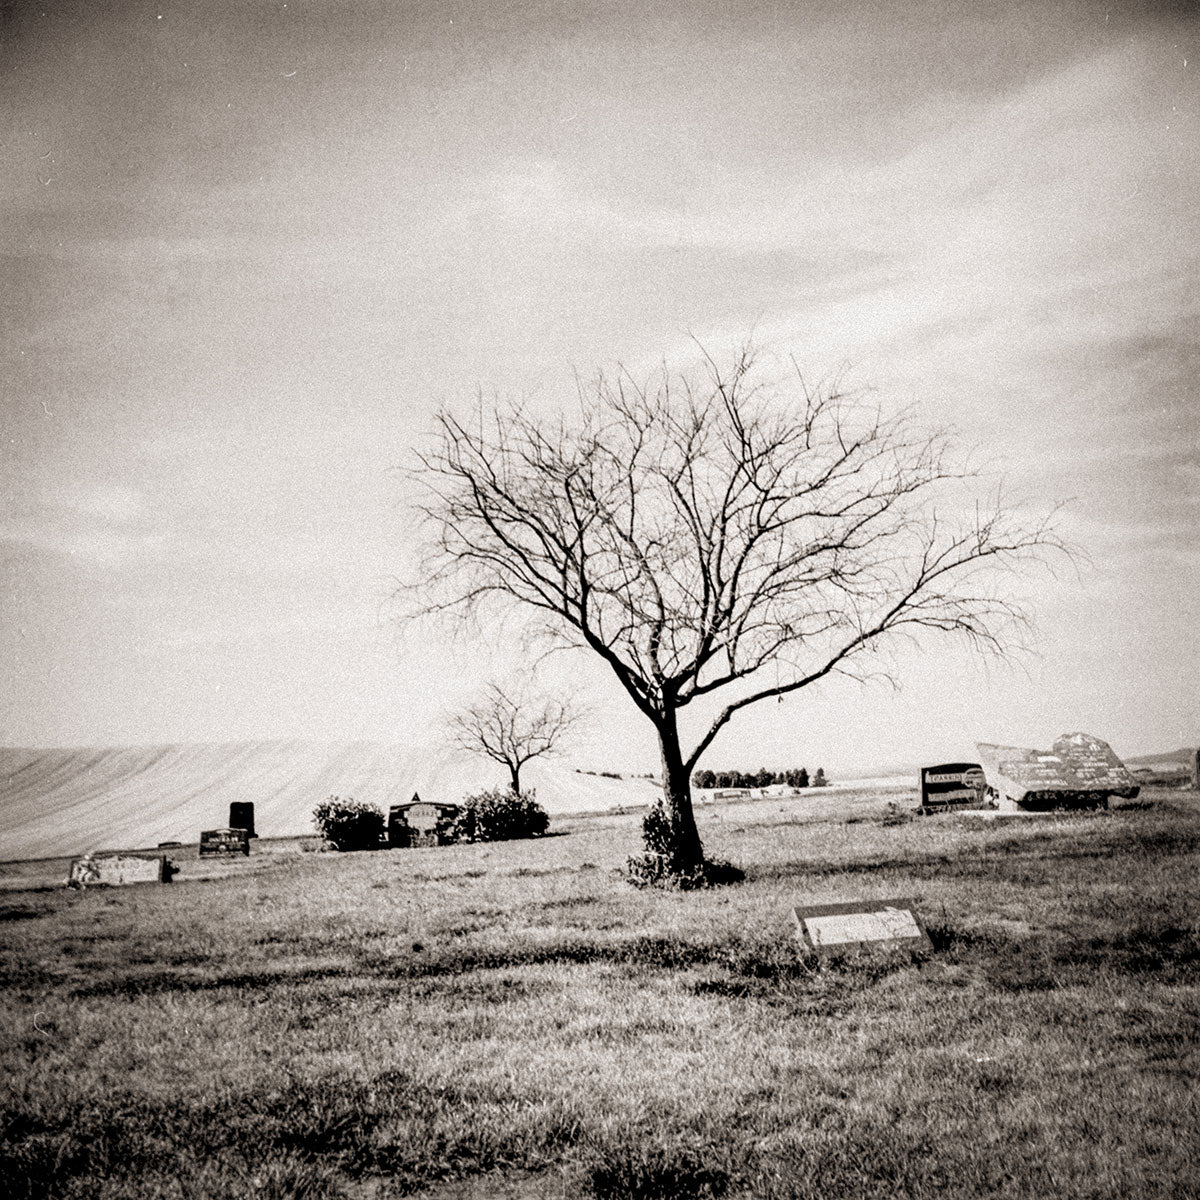 Cemetery and Tree, Grainy Square Film Photography Print